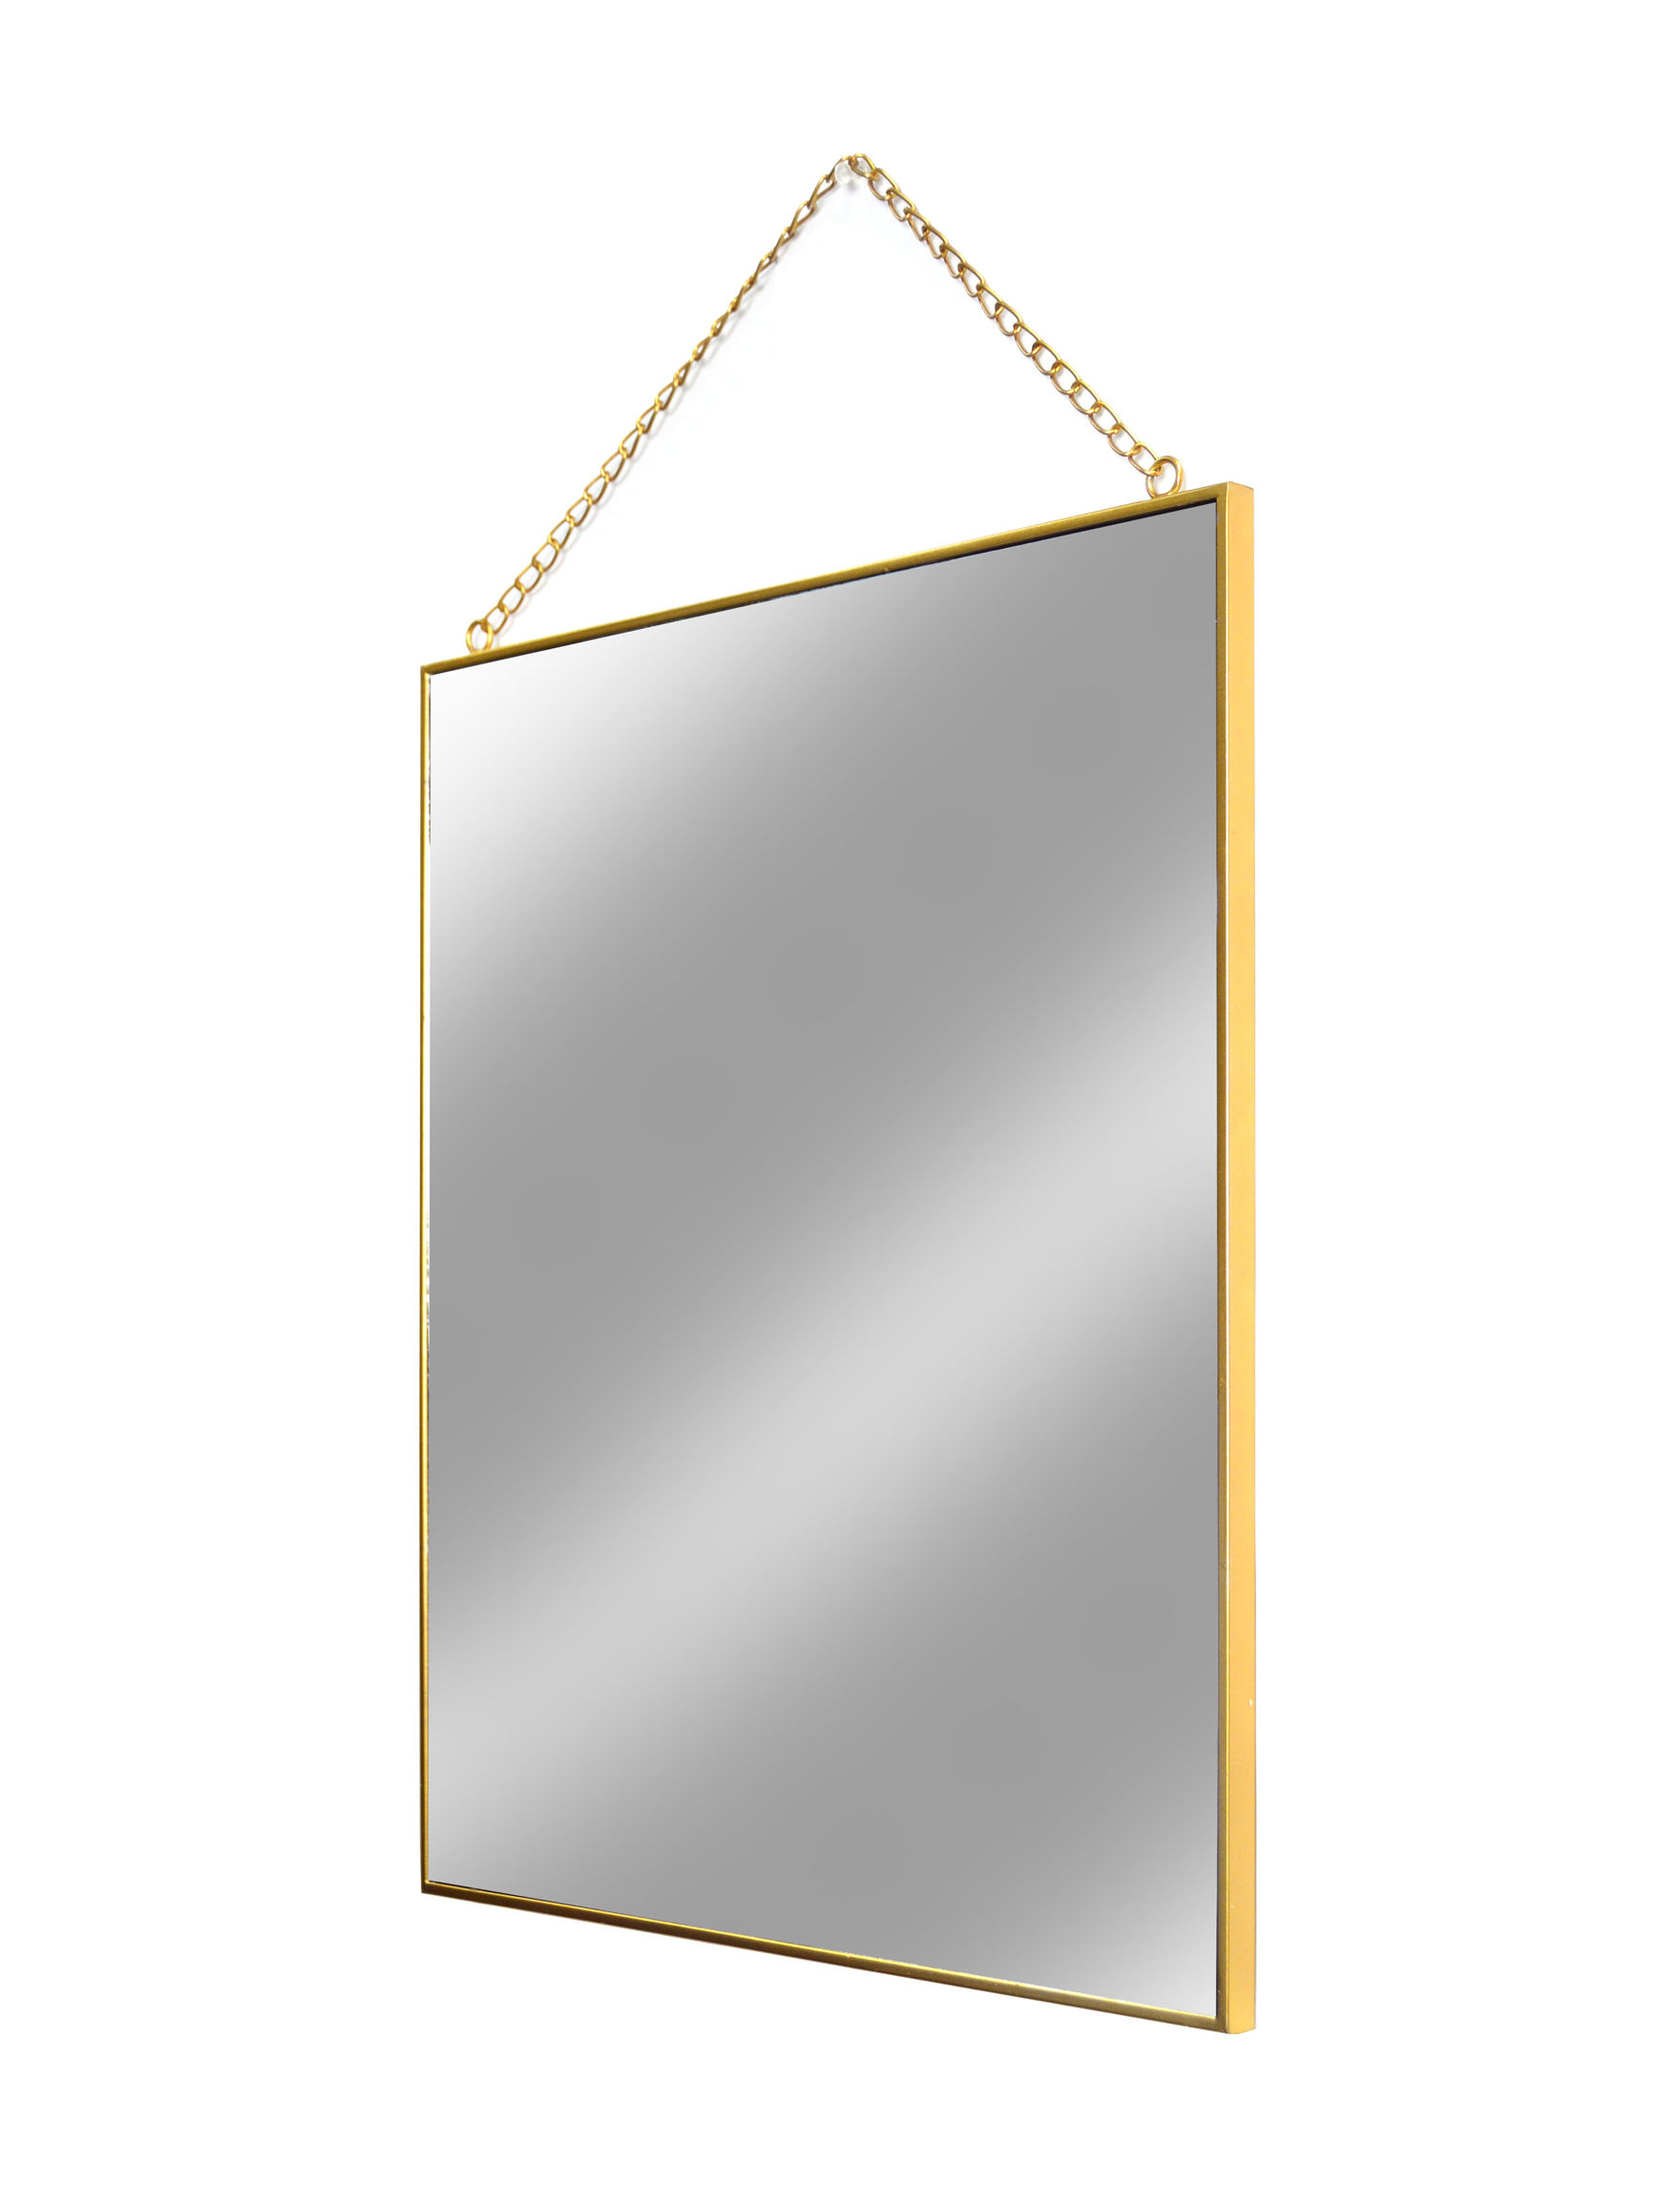 New View Gold Mirrors Wall Decor